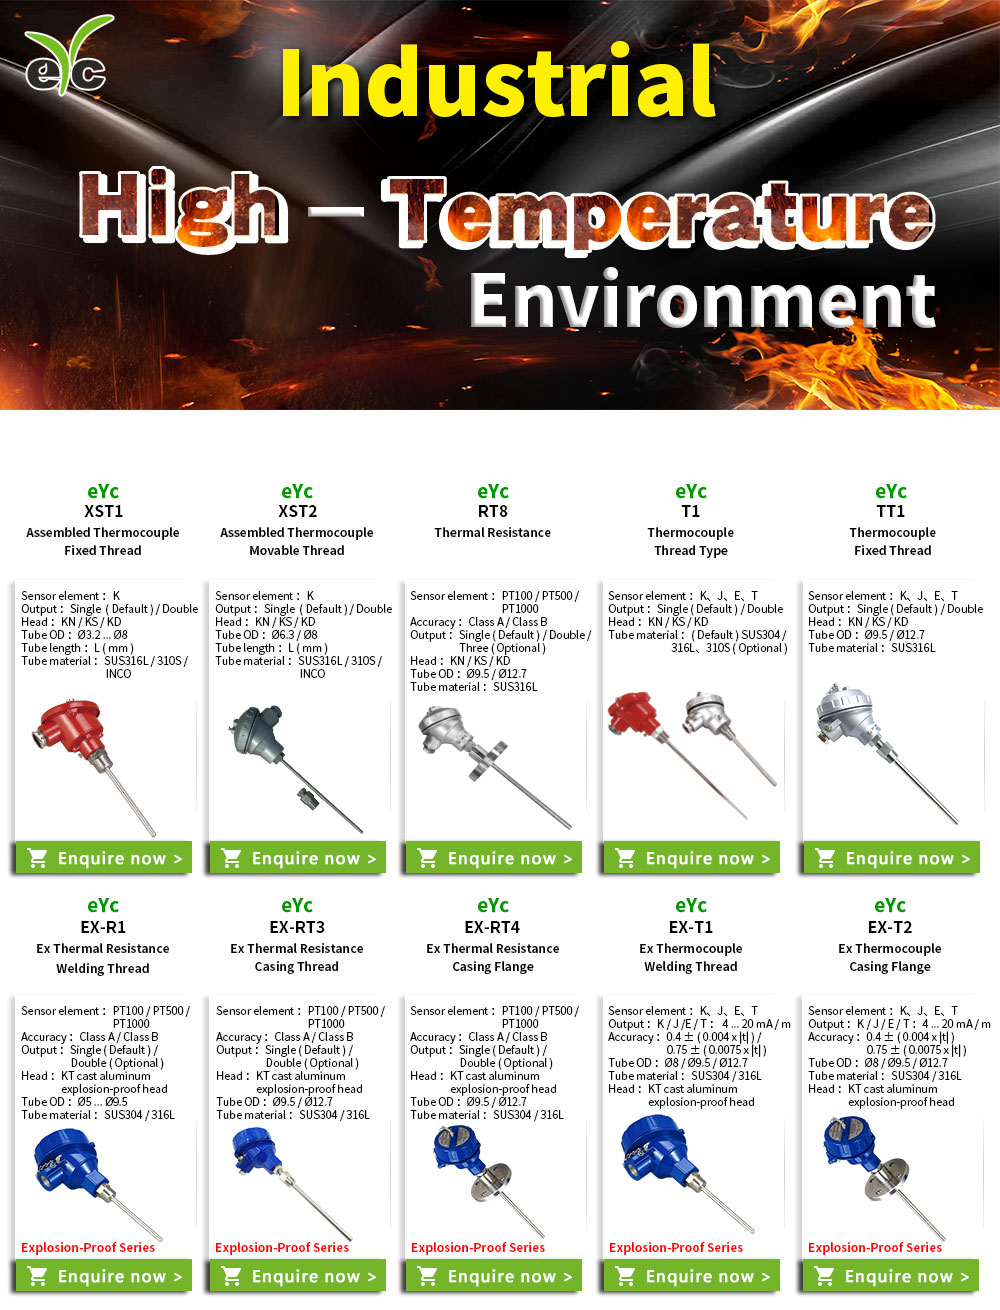 eYc Thermal Resistance Thermocouple Industrial High Temperature Environment